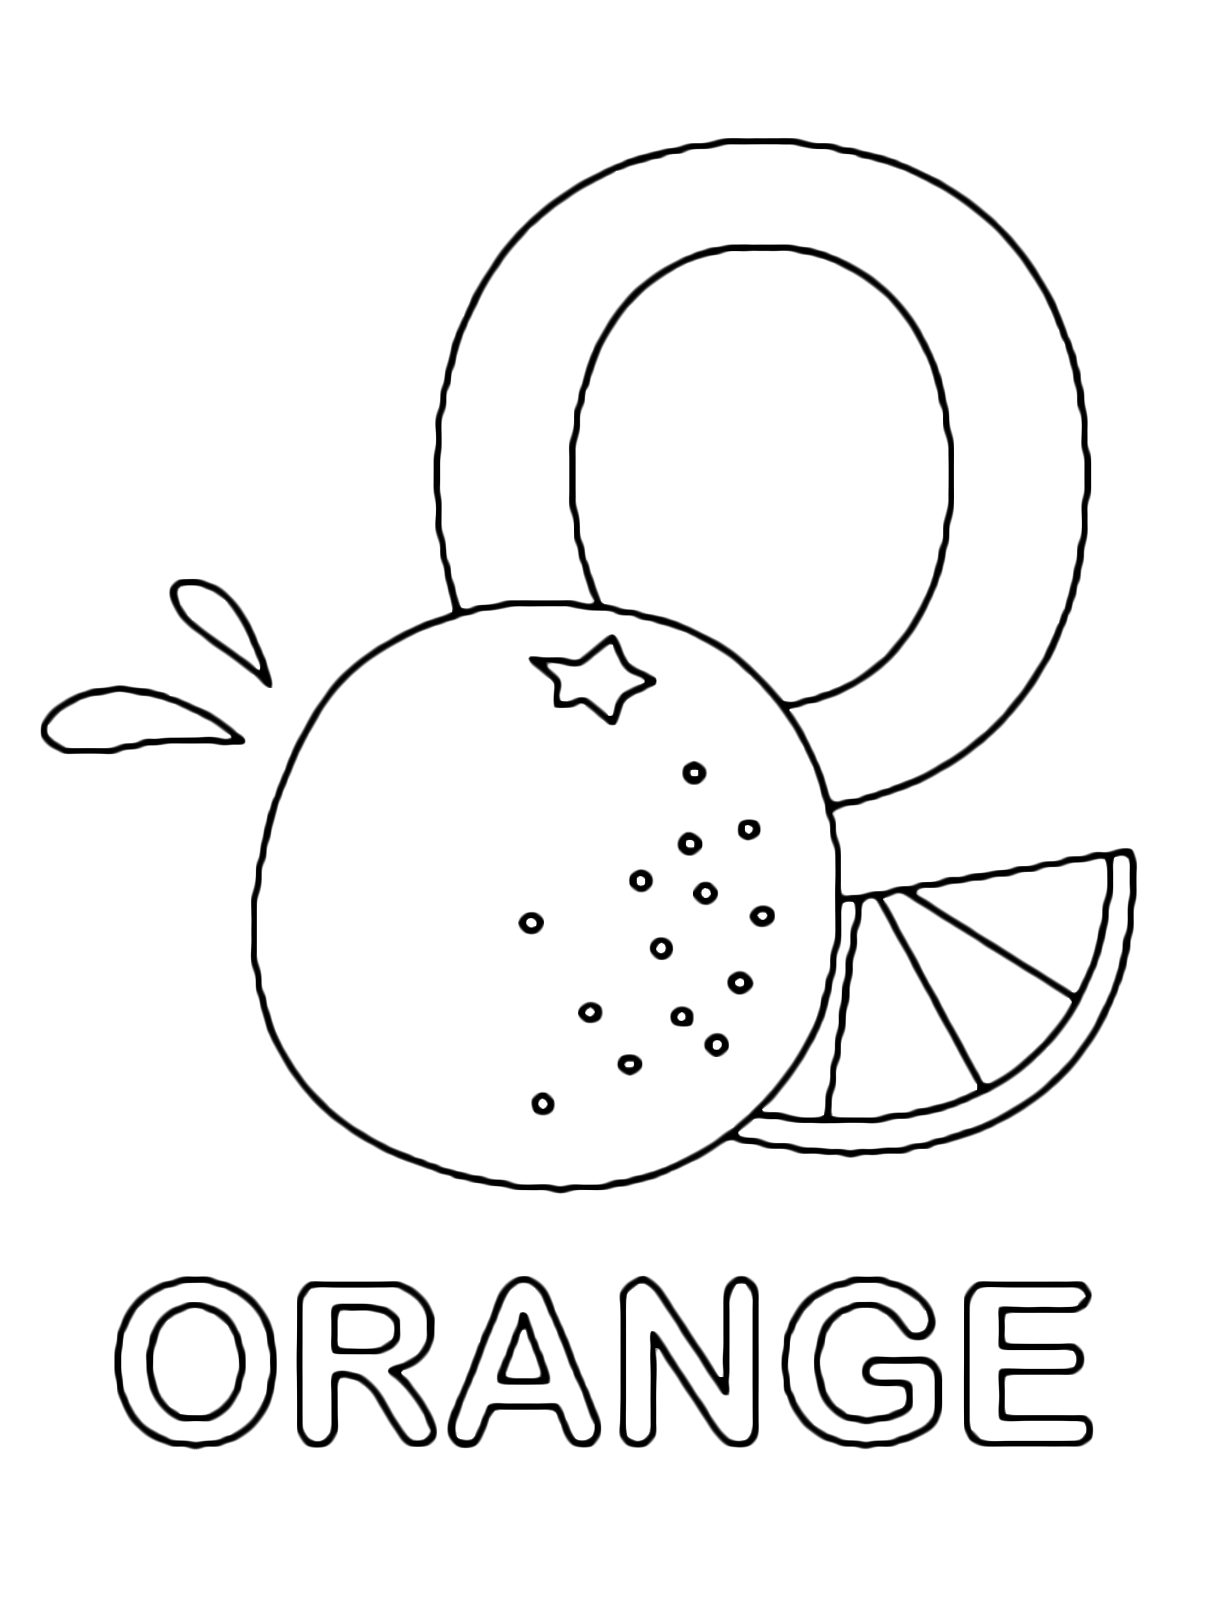 Letters and numbers - O for orange uppercase letter